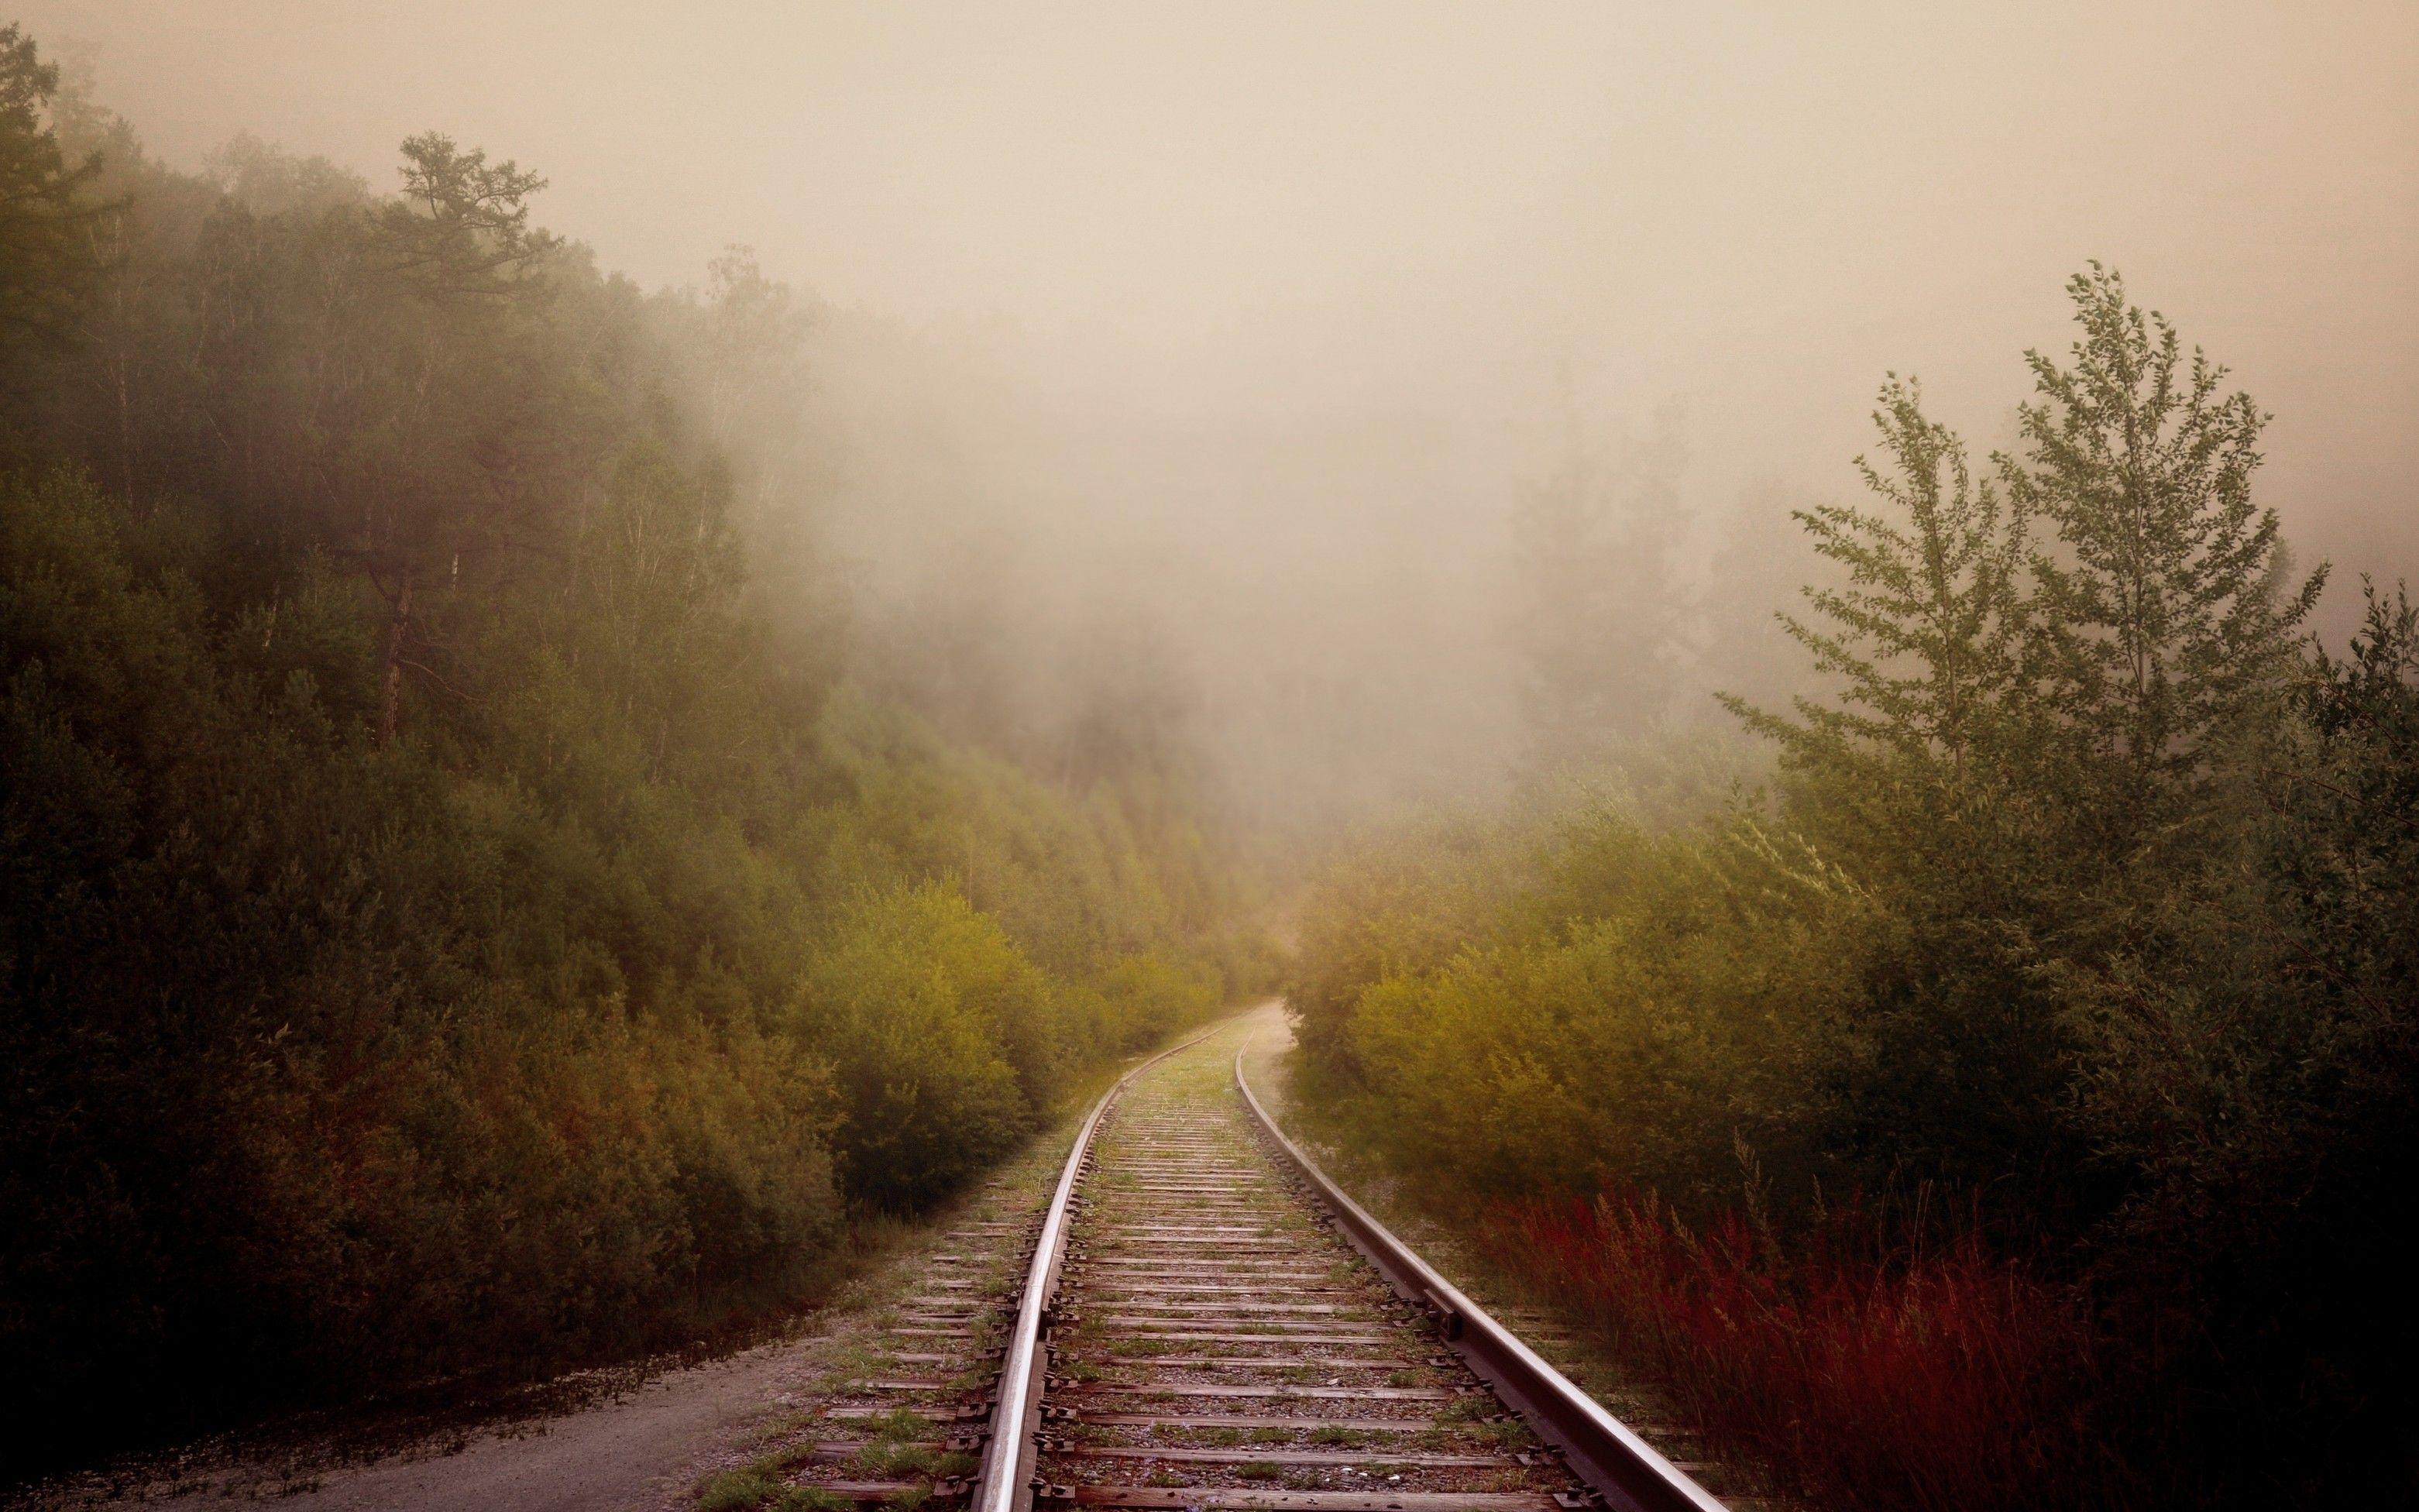 Download 3123x1952 Railway, Trees, Fog Wallpapers